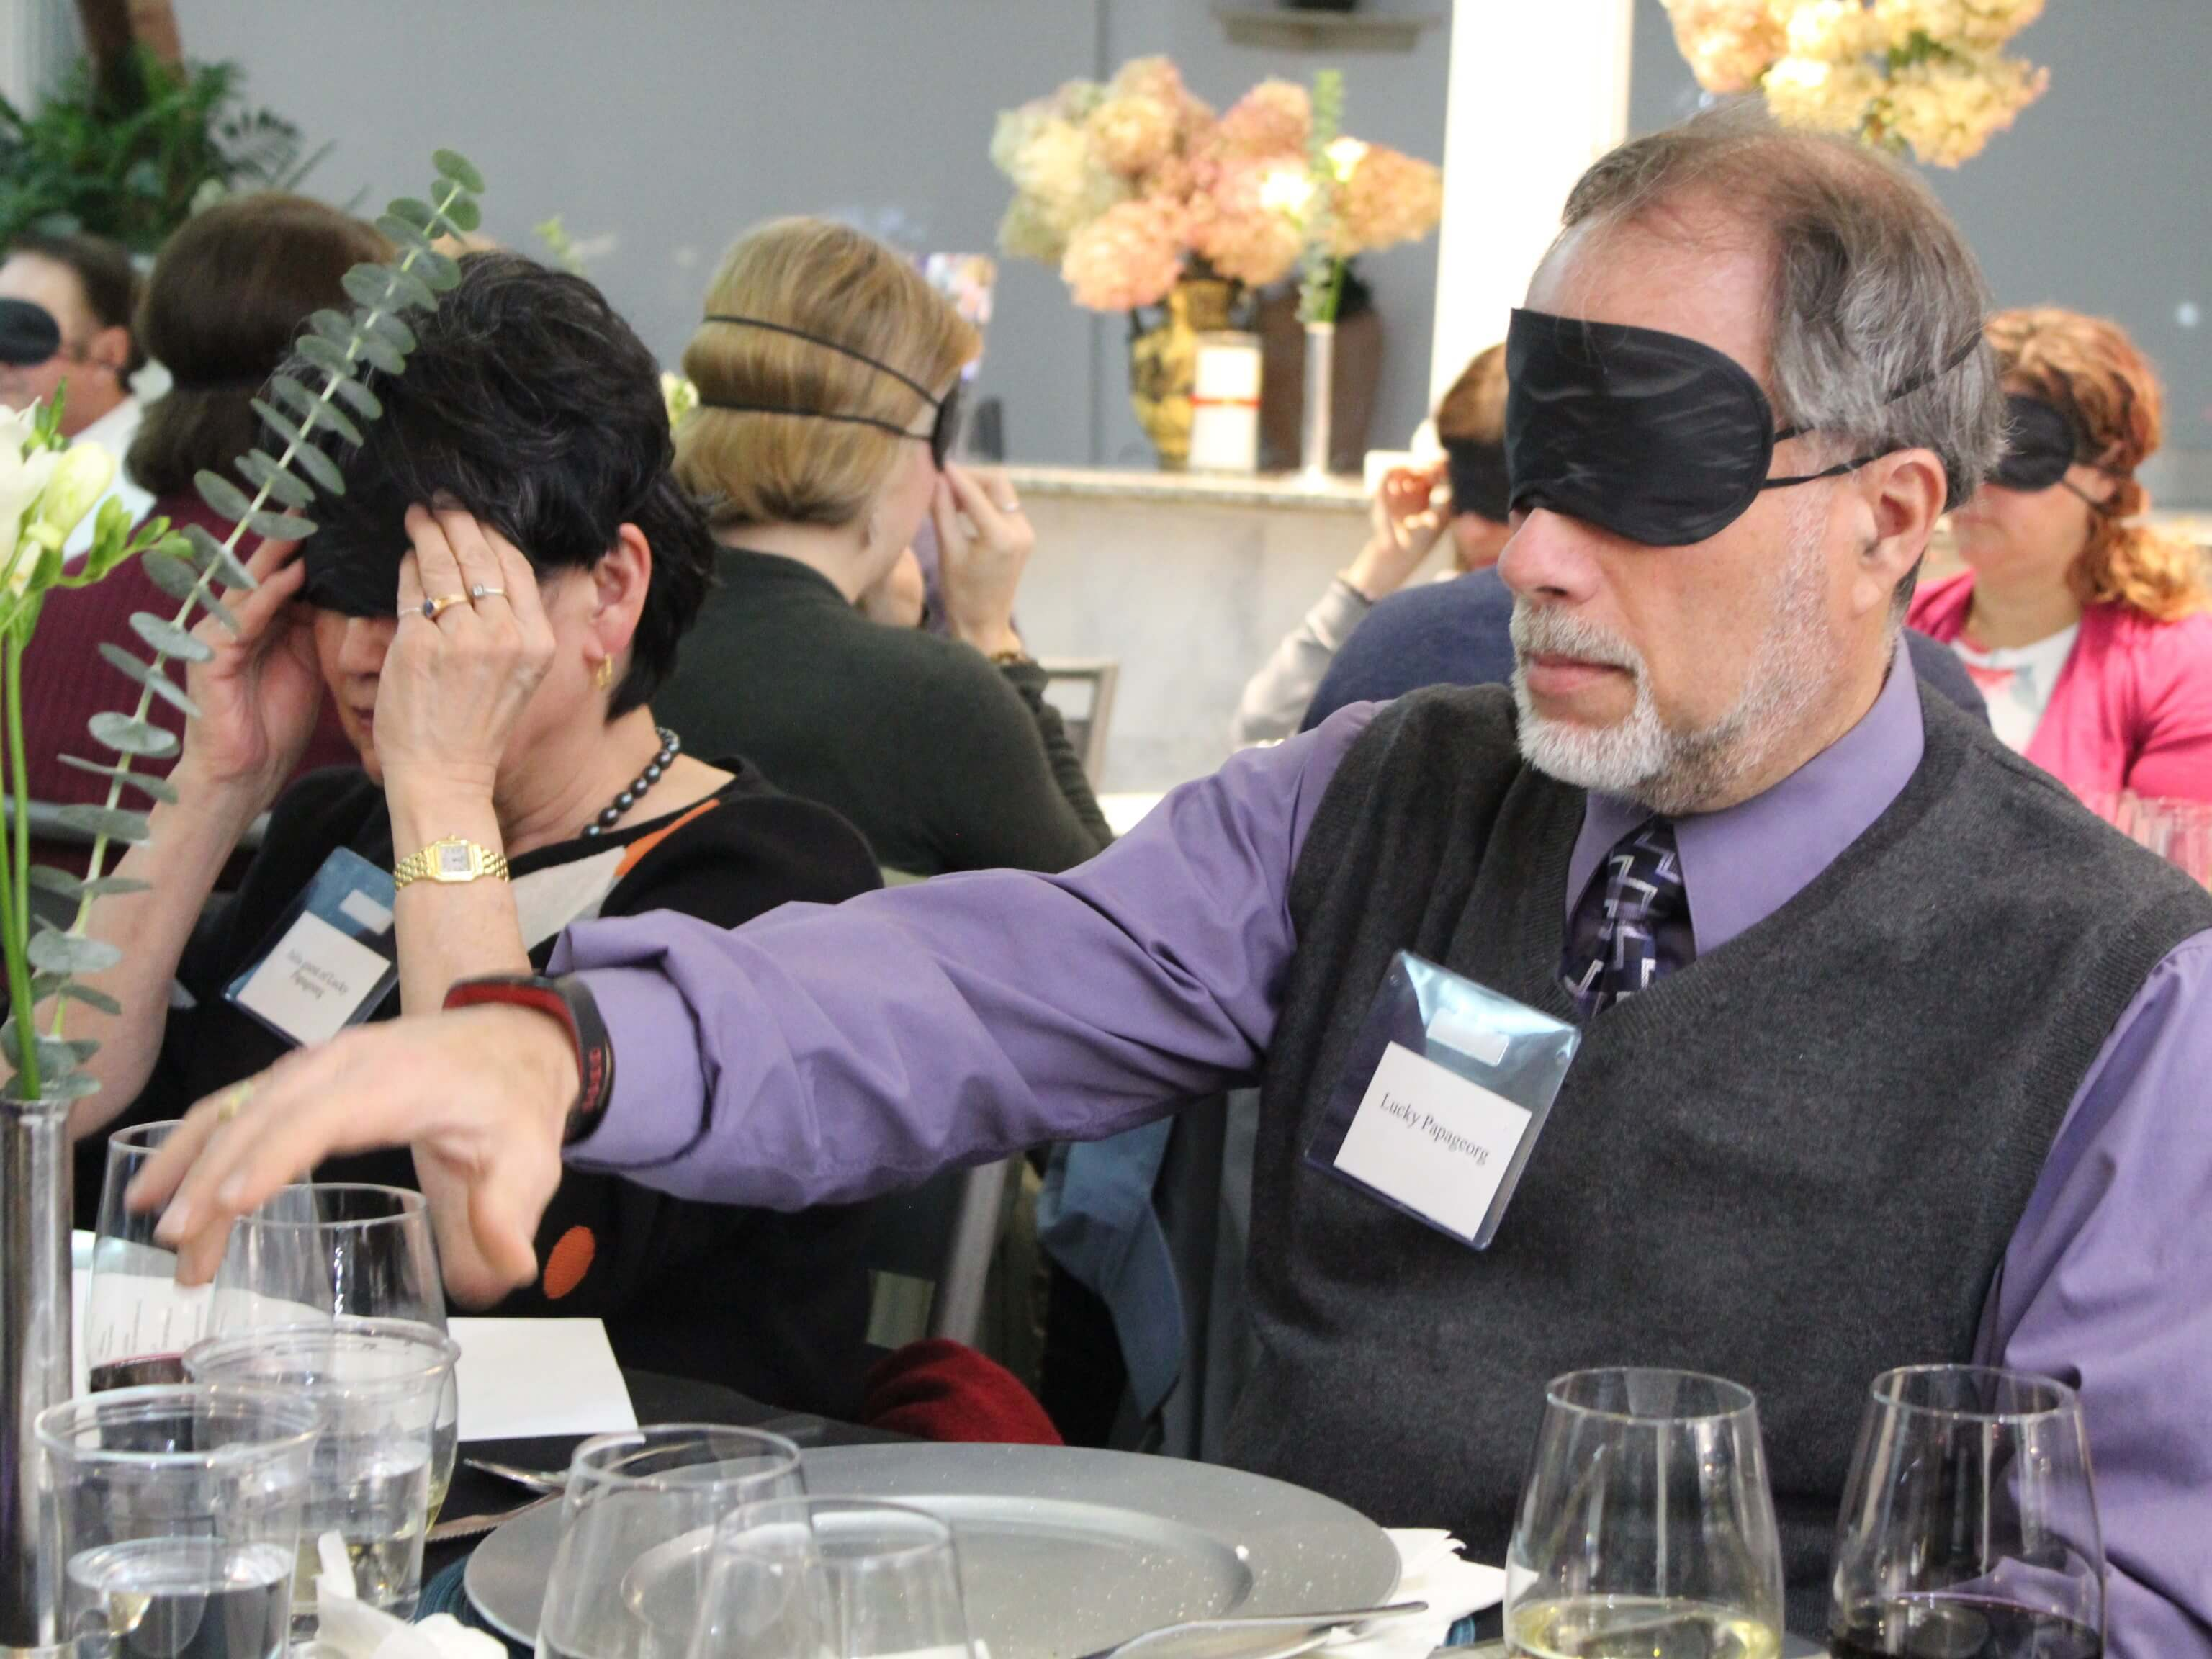 Two diners wear occluders (blindfolds) at the Farm Grill's blind food and wine tasting to benefit the carroll center. A man explores his surroundings while seated at a table.